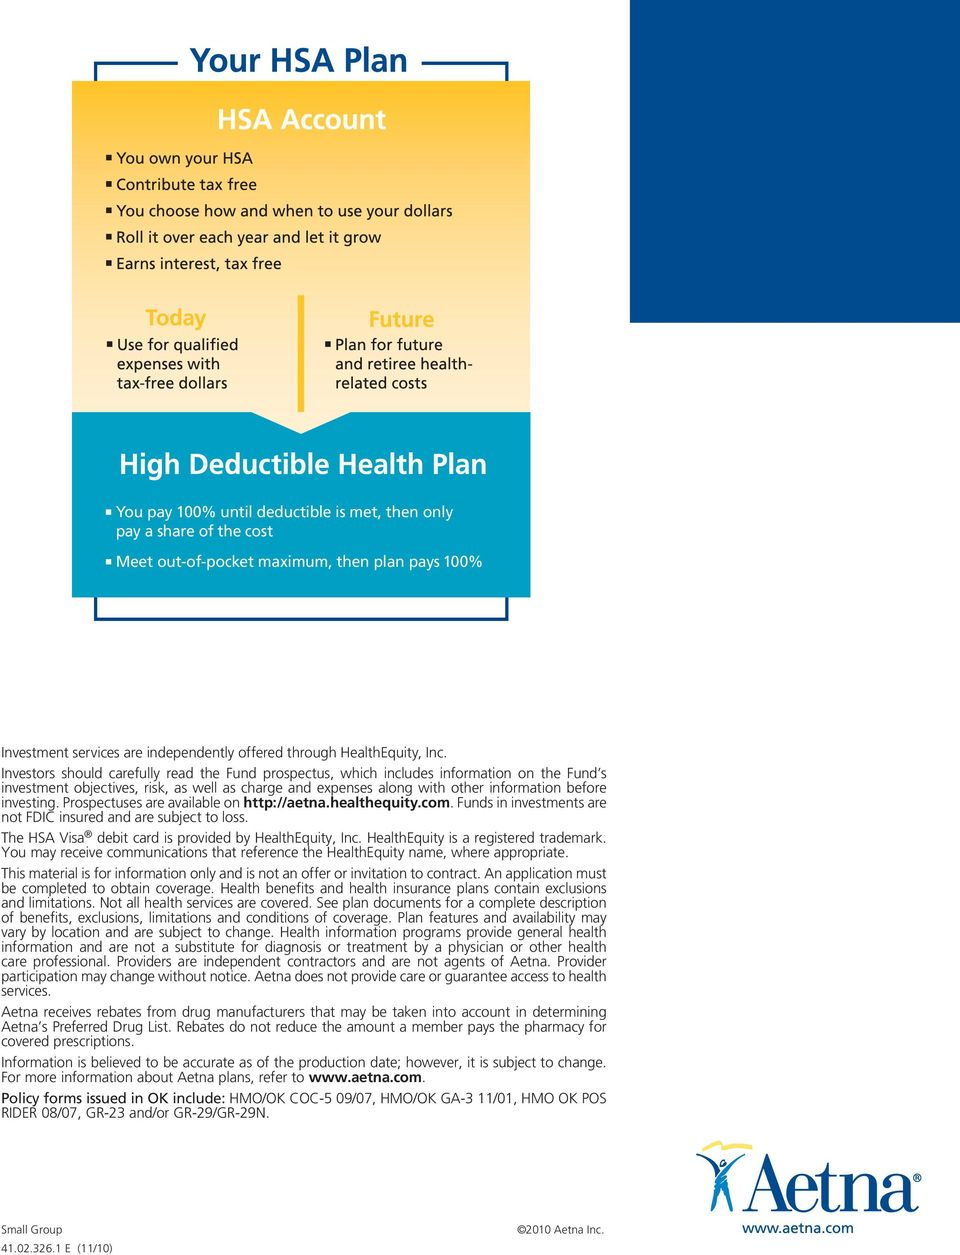 Prospectuses are available on http://aetna.healthequity.com. Funds in investments are not FDIC insured and are subject to loss. The HSA Visa debit card is provided by HealthEquity, Inc.